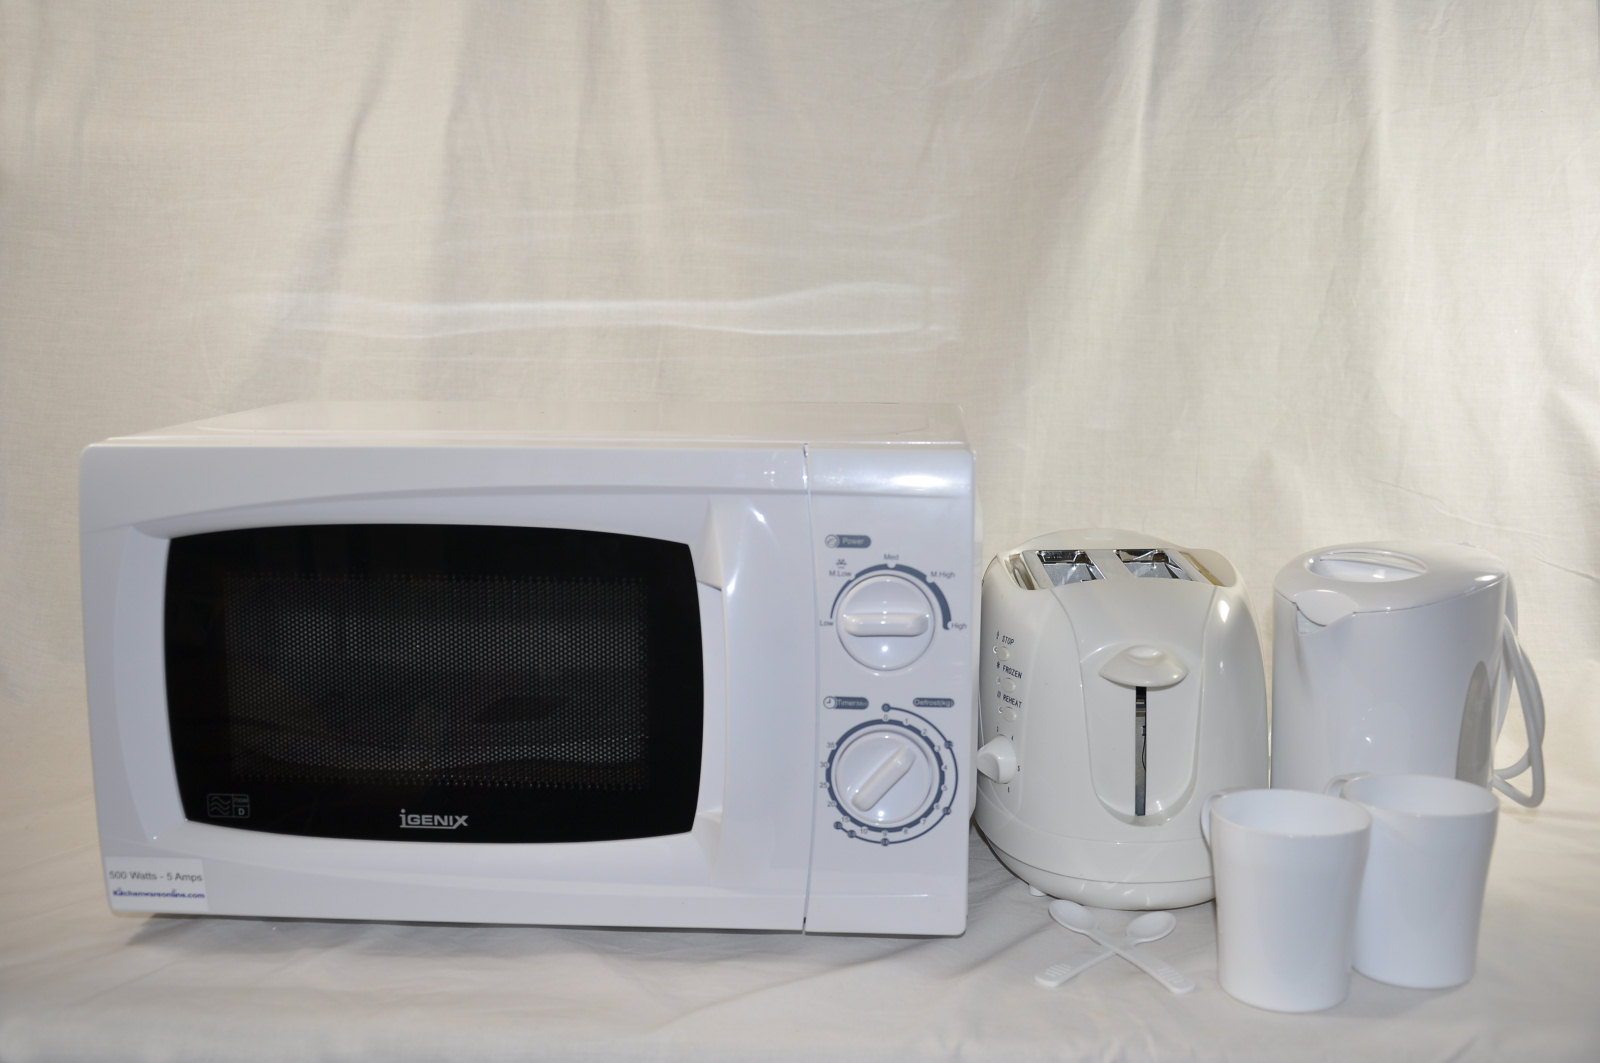 Low Power Microwave, Kettle and Toaster set [LOWPOWER.KIT001]